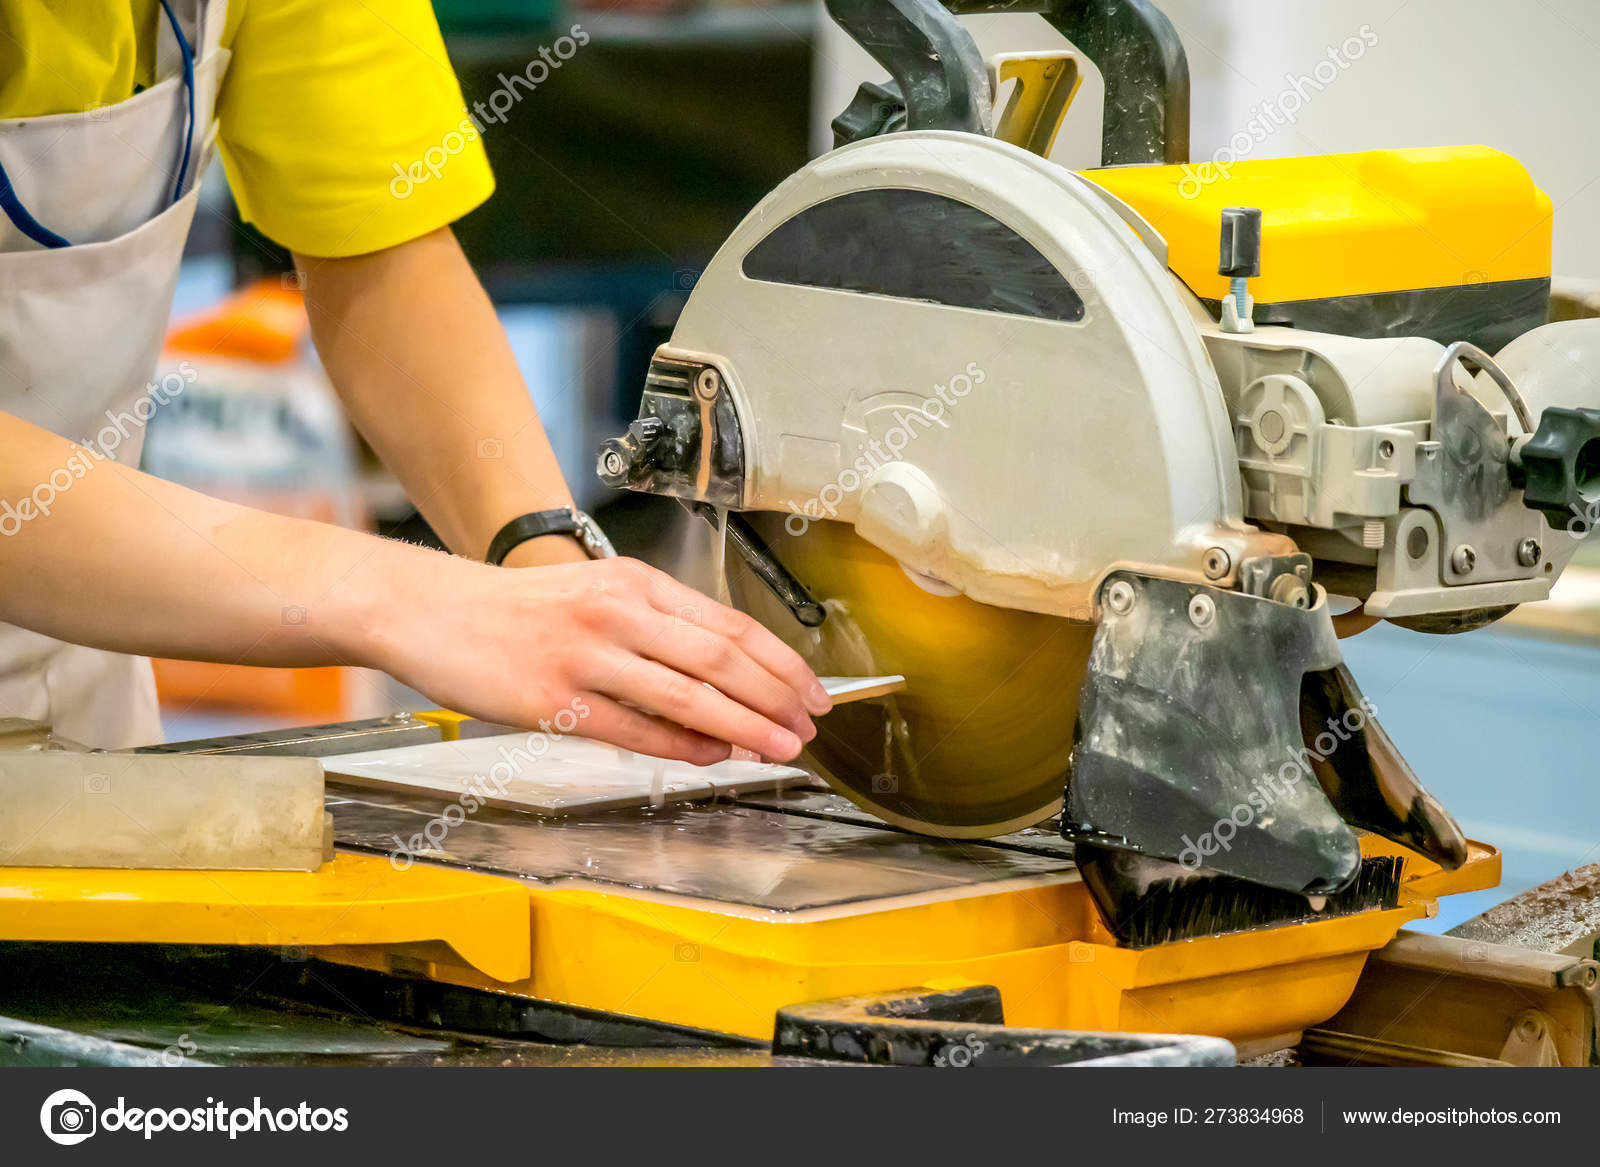 cutting tile a circular saw a builder performs a tile cut finishing work circular saw with water supply work at the machine stock photo image by c grinphoto 273834968